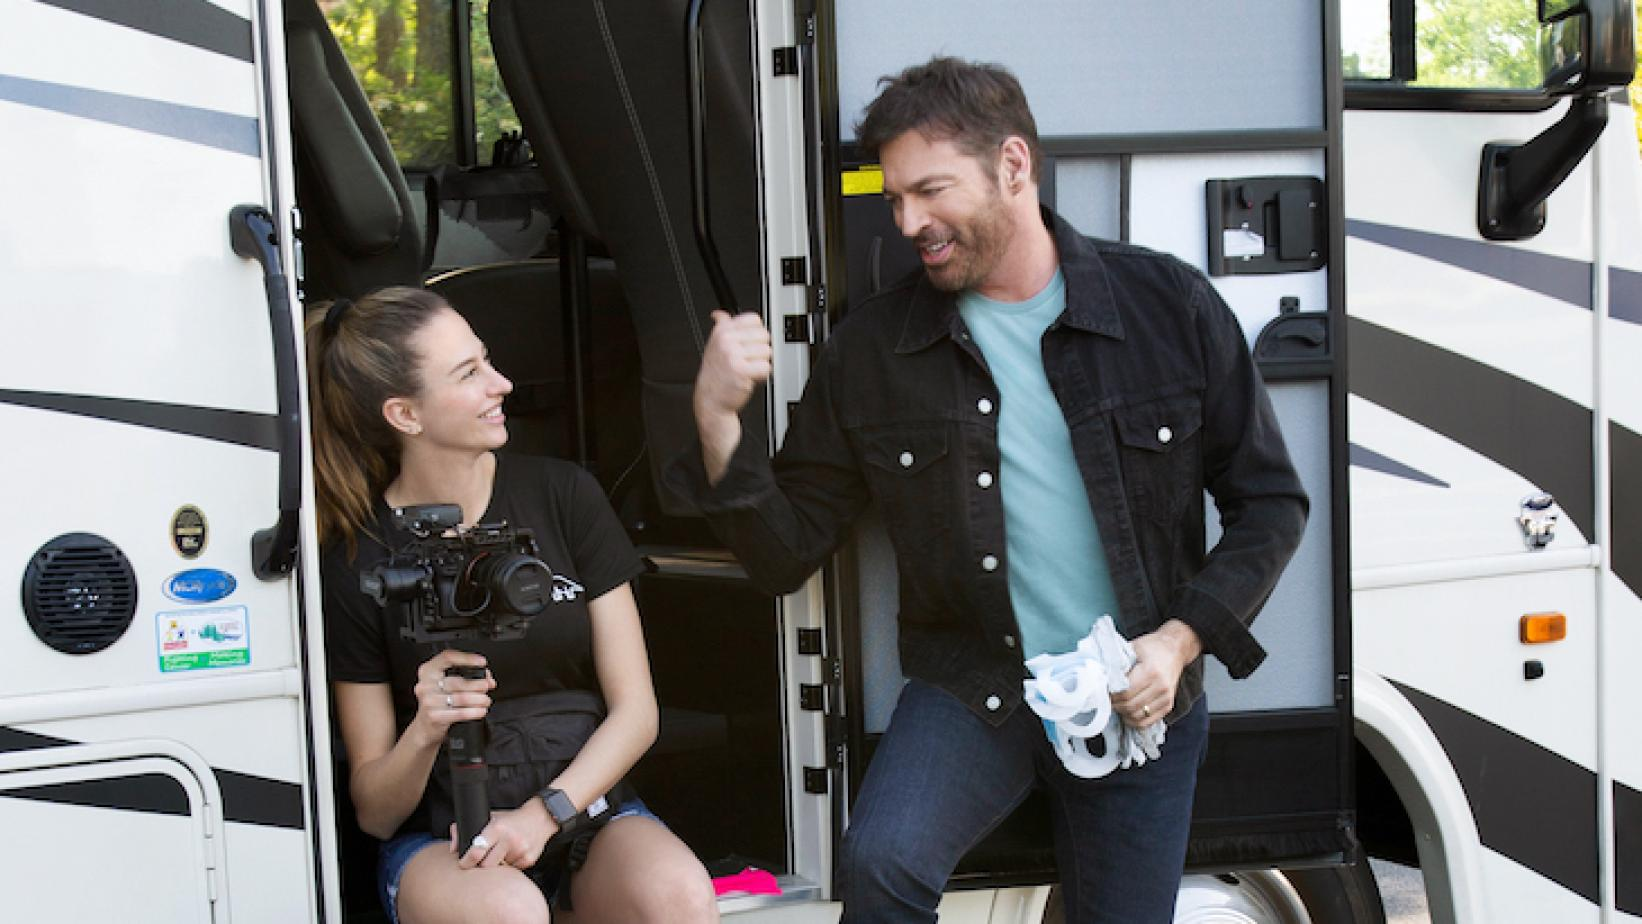 """Harry Connick, Jr. (R) andGeorgia Connick (L)filming """"UNITED WE SING"""" on location for CBS"""